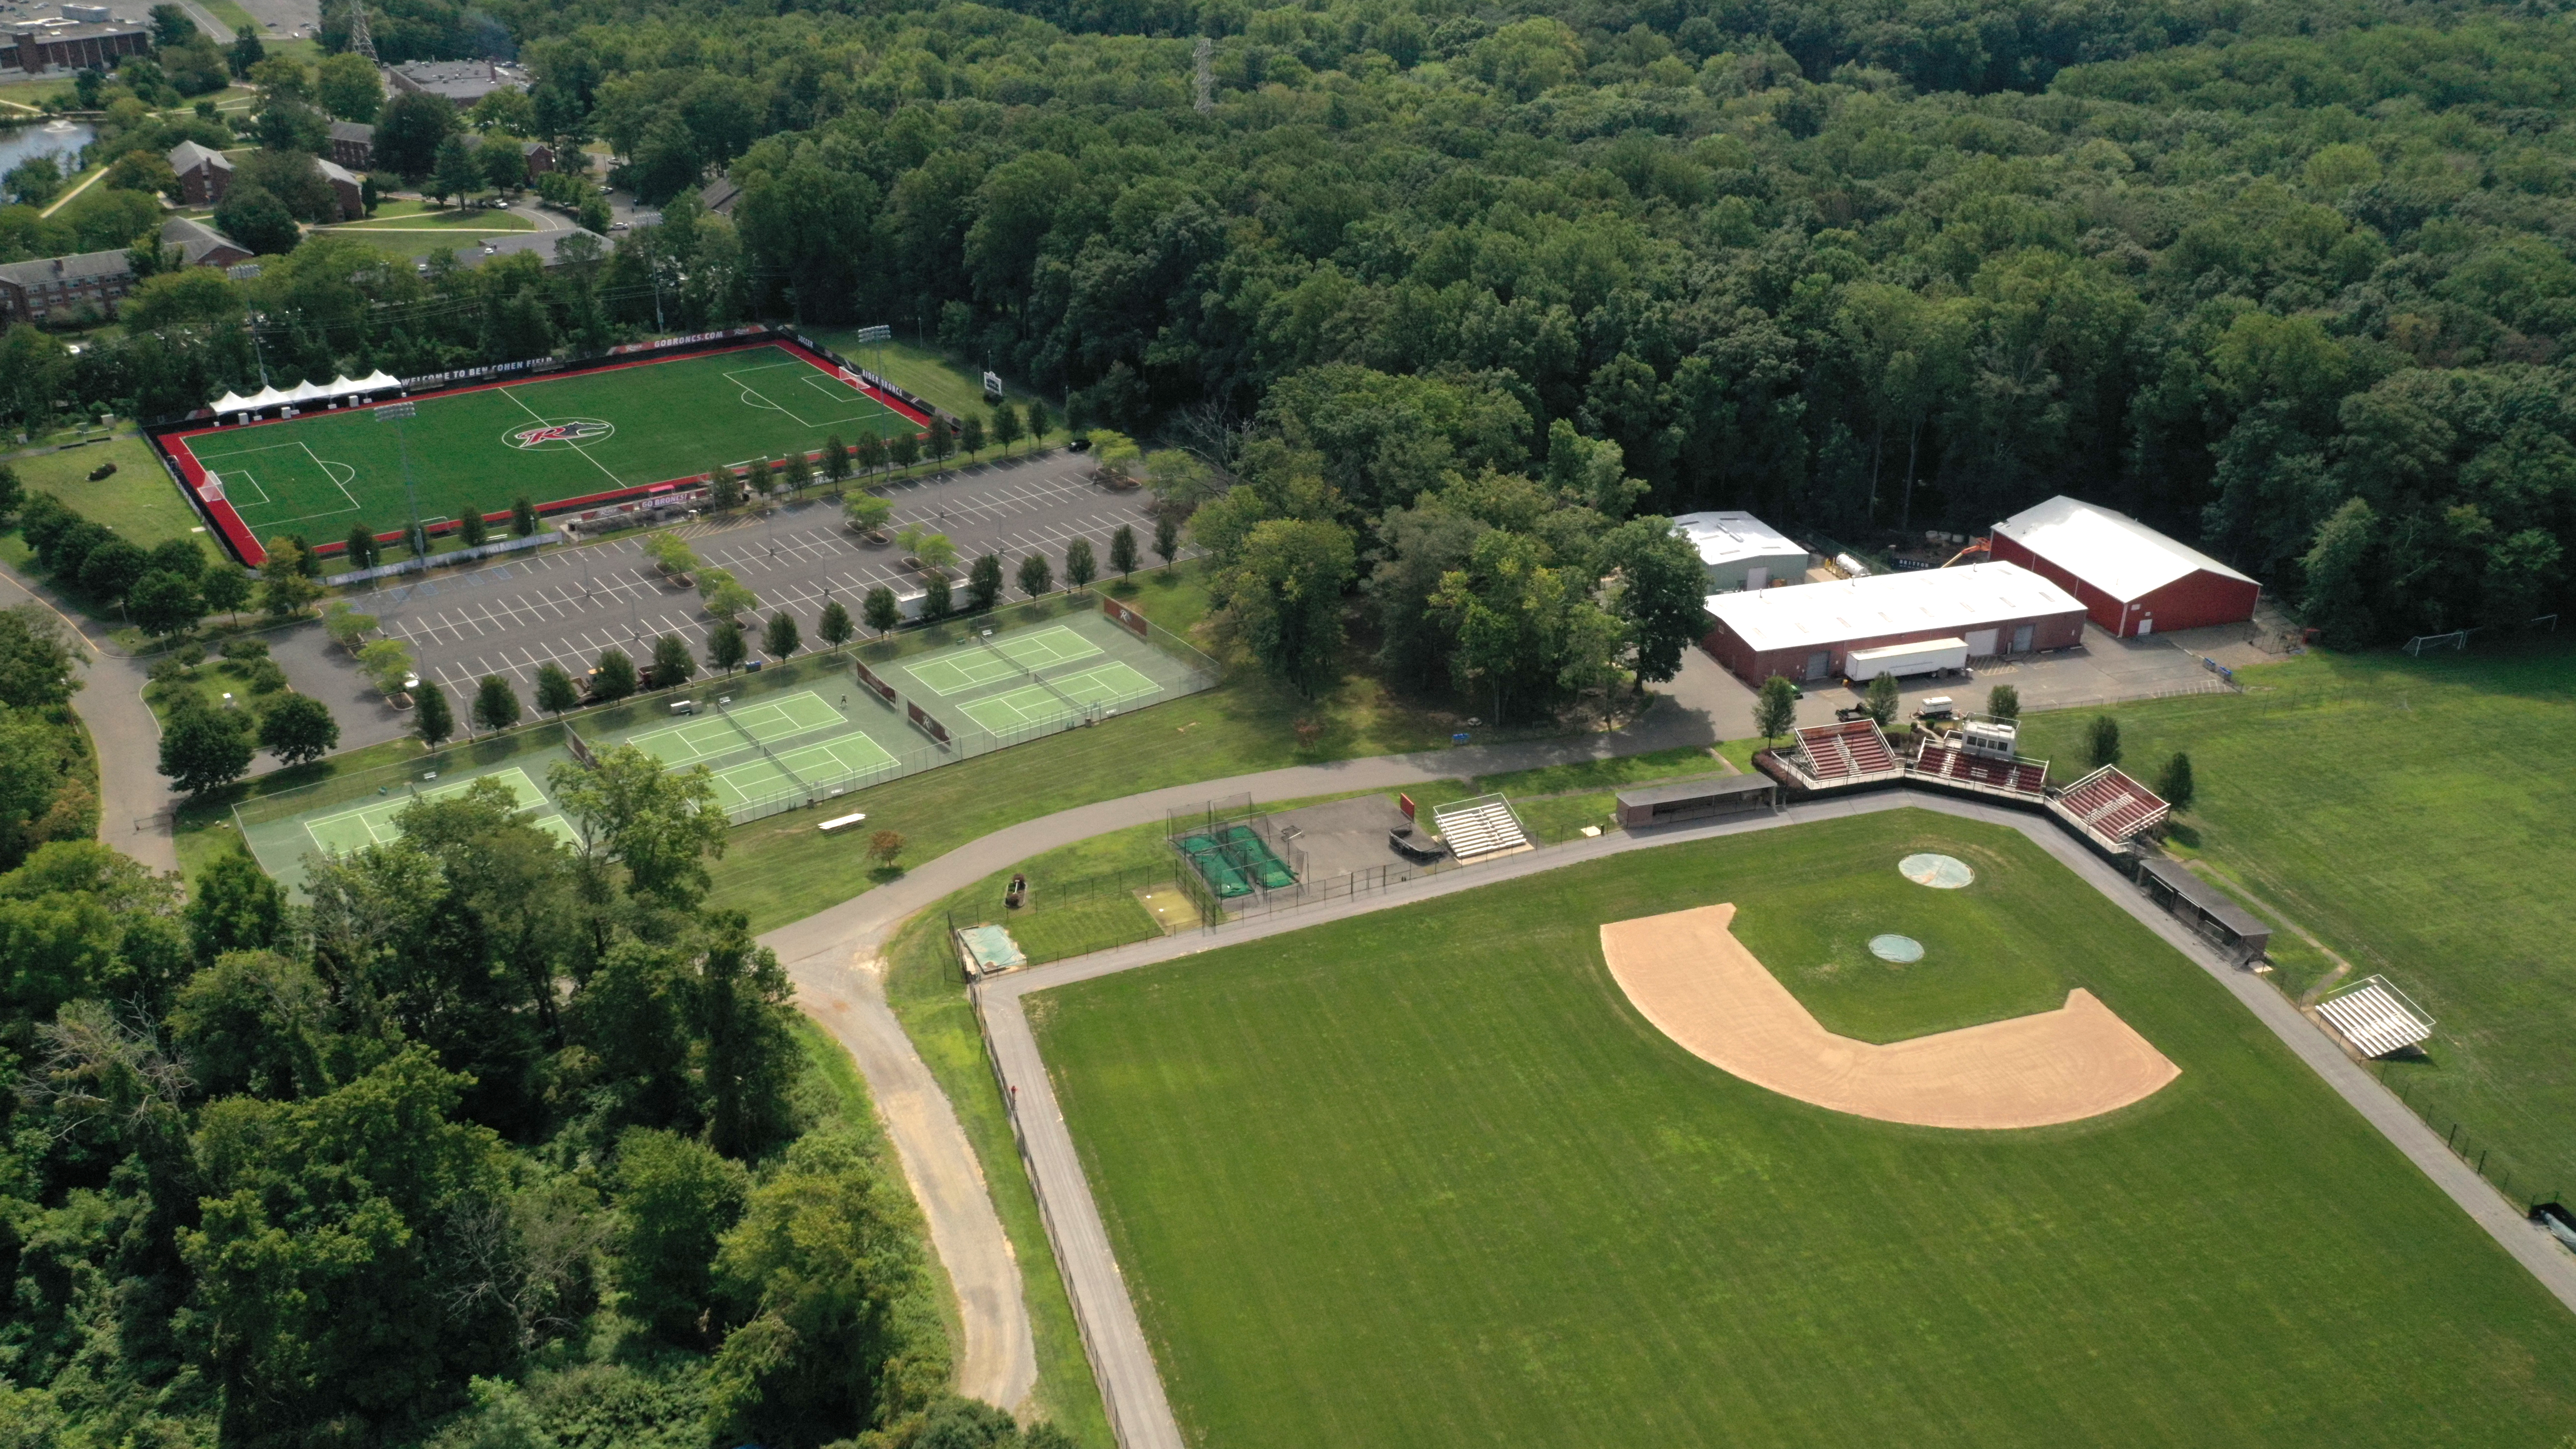 Aerial view of athletic fields